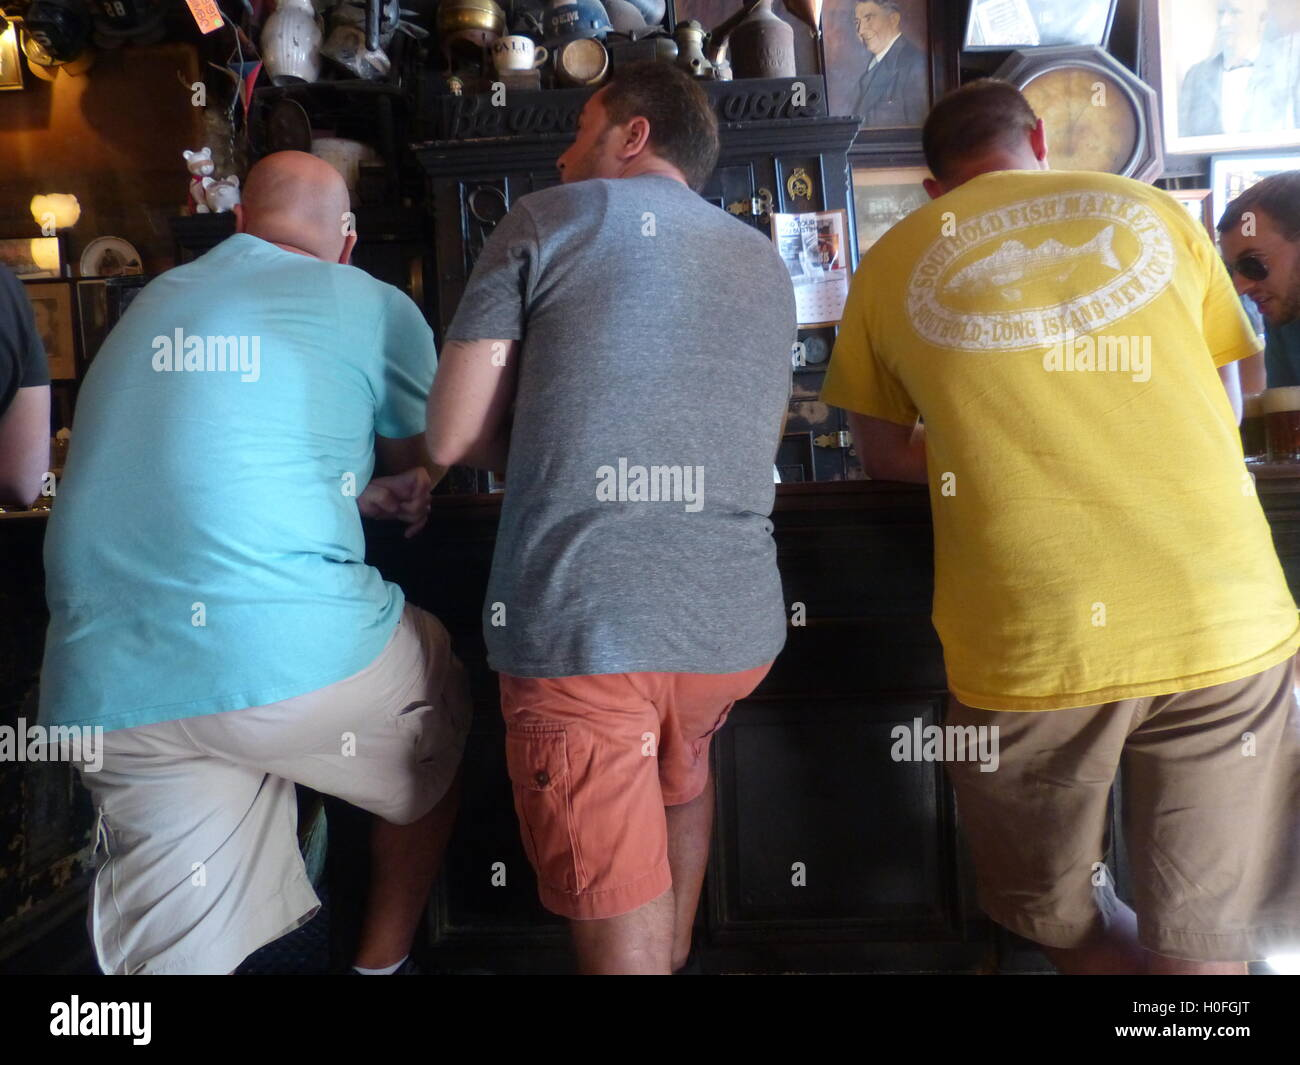 Guests in colorful shirts lean over bar while drinking beer - Stock Image